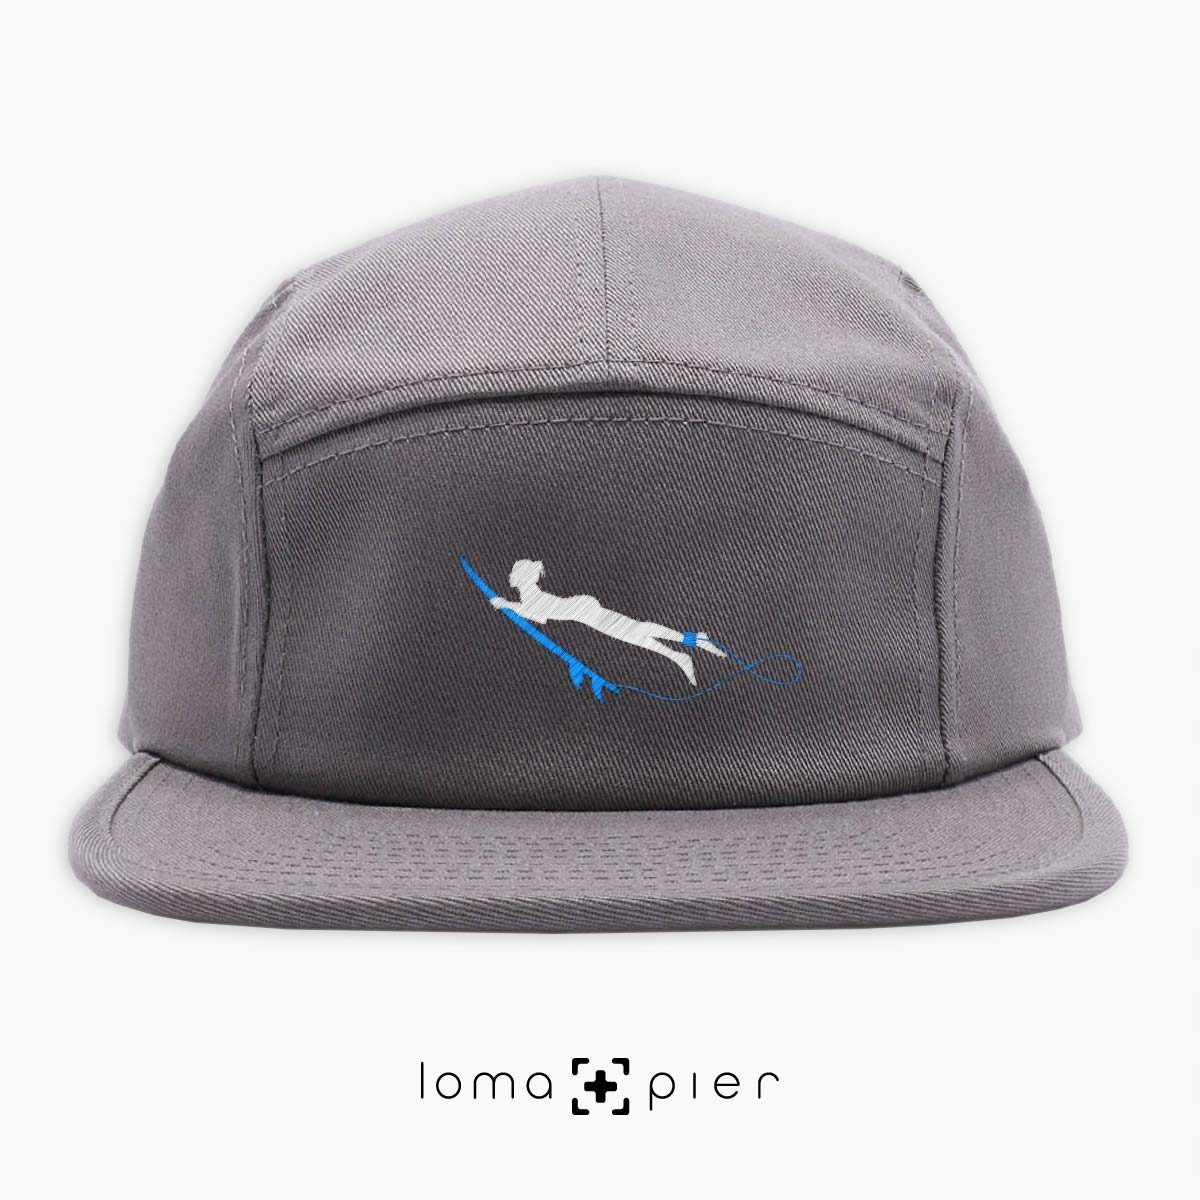 DUCK NAKED surfer icon embroidered on a grey cotton 5-panel hat by loma+pier hat store